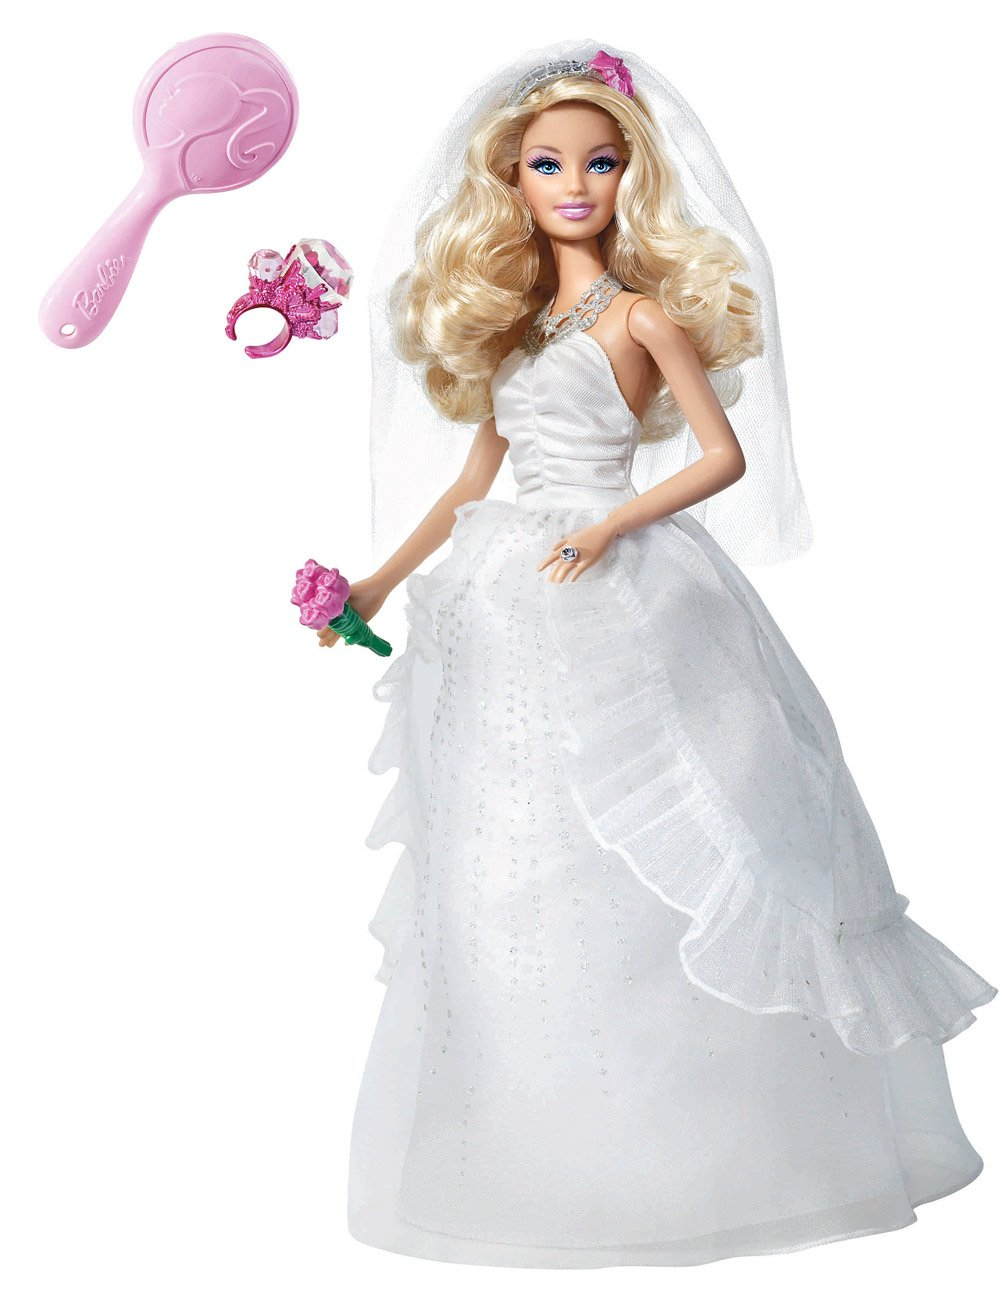 Barbie Princess Bride Doll: Amazon.co.uk: Toys & Games